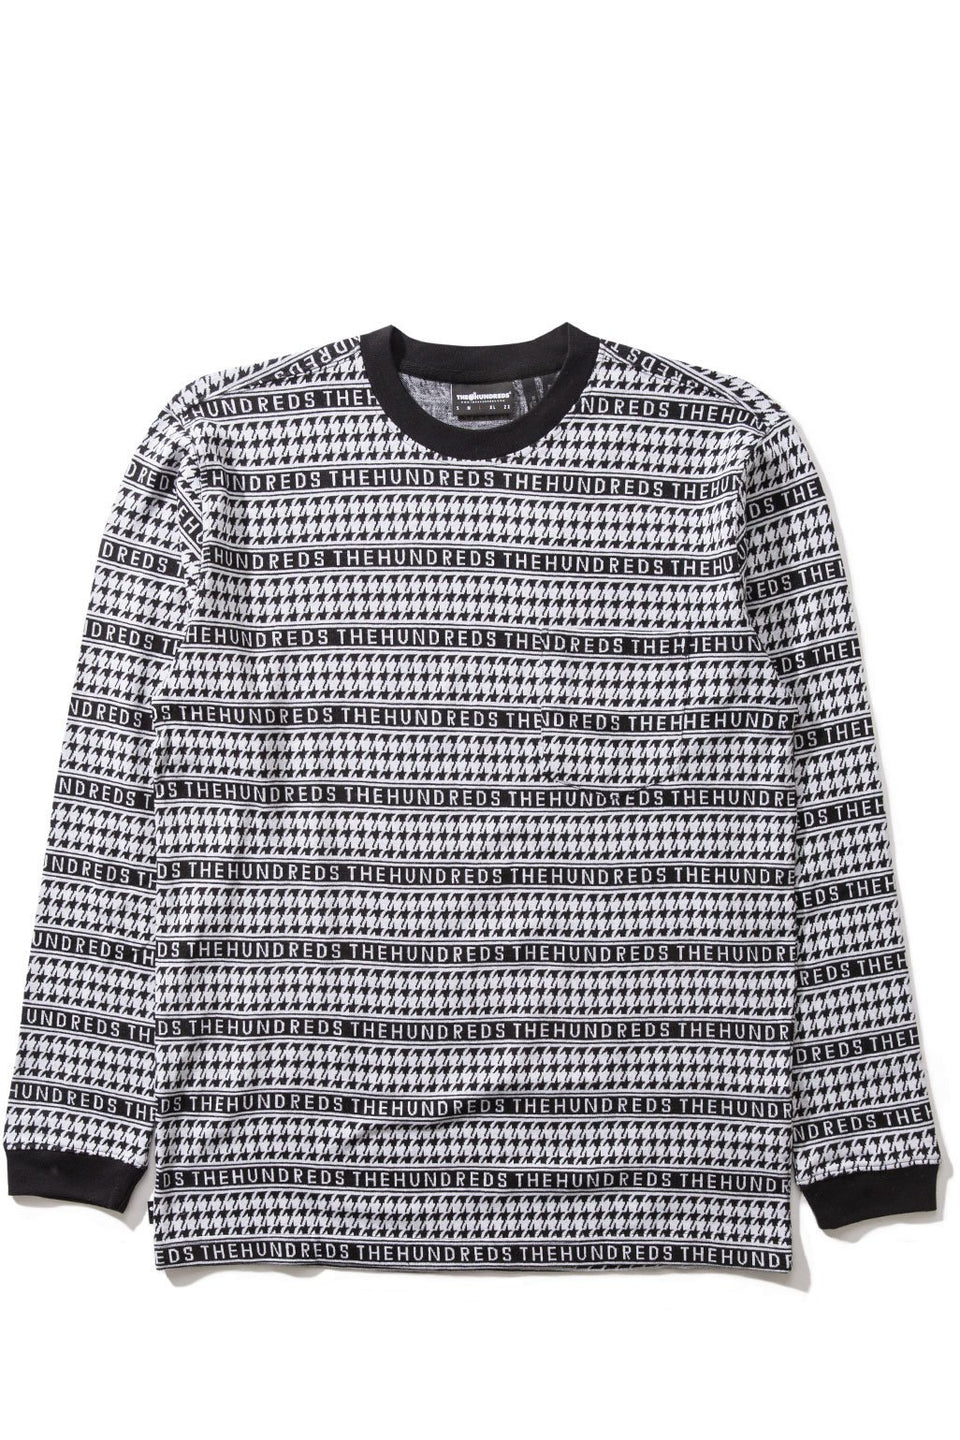 Hounds L/S Shirt-TOPS-The Hundreds UK